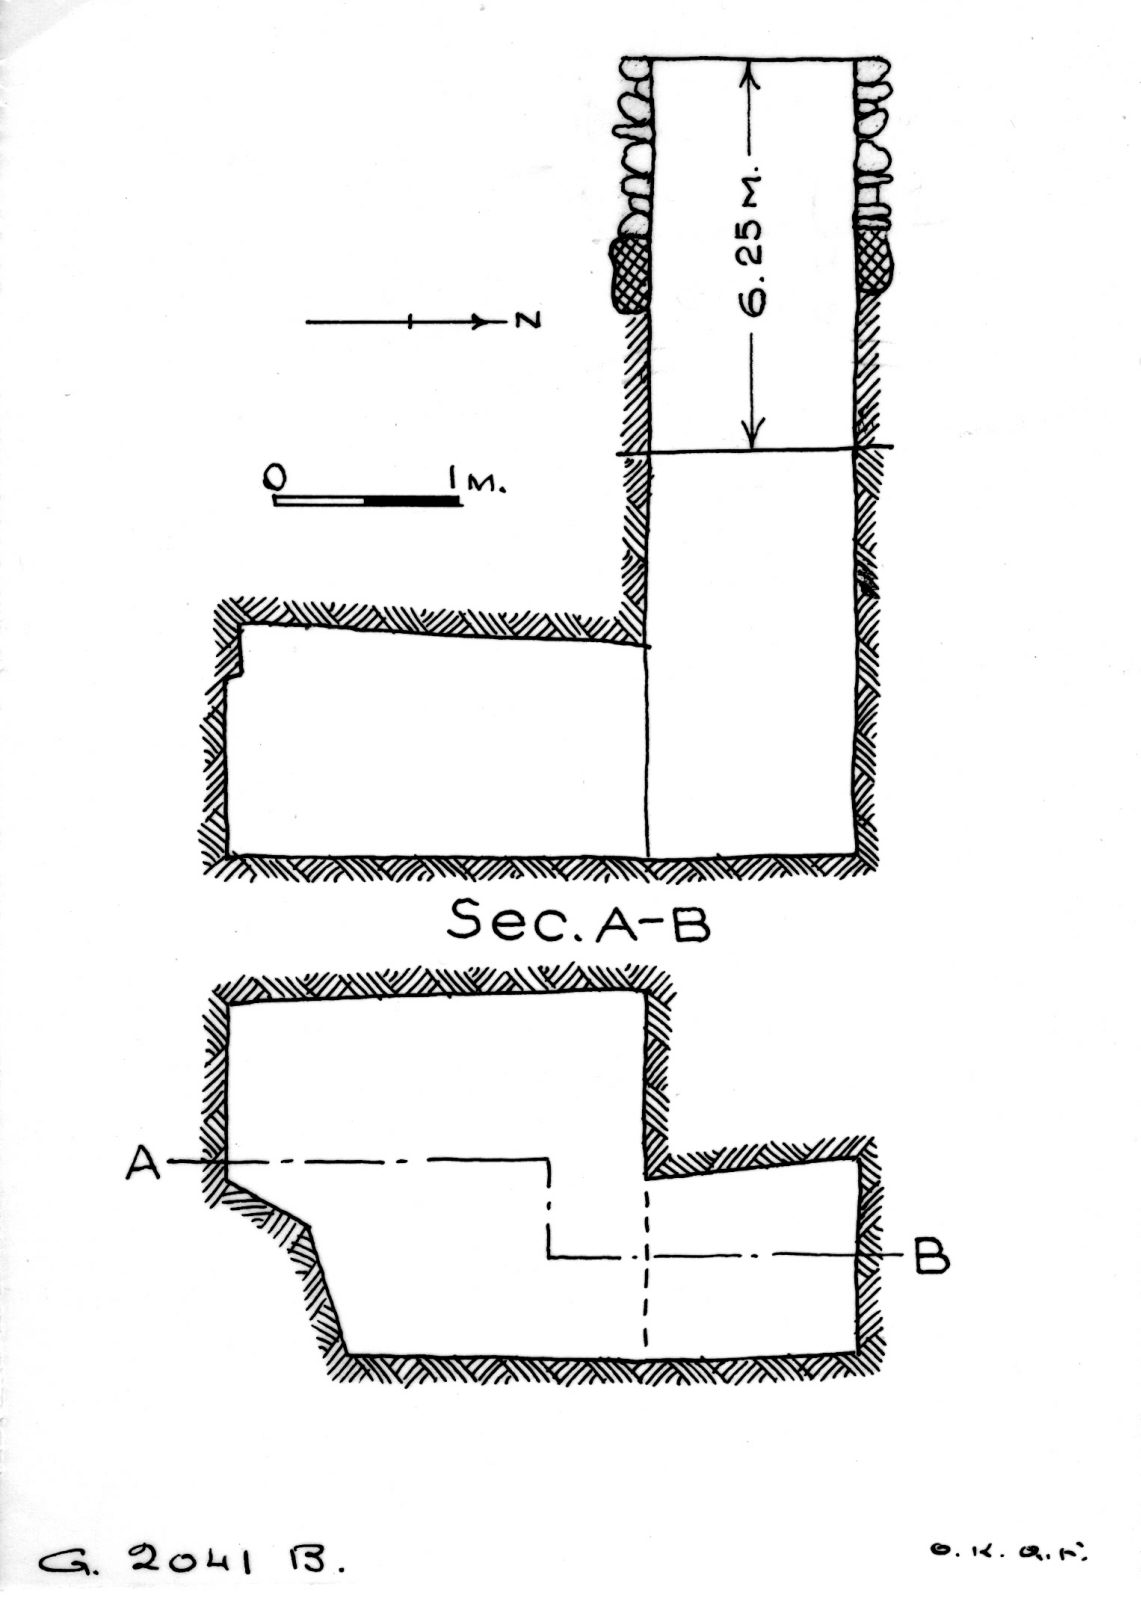 Maps and plans: G 2041, Shaft B